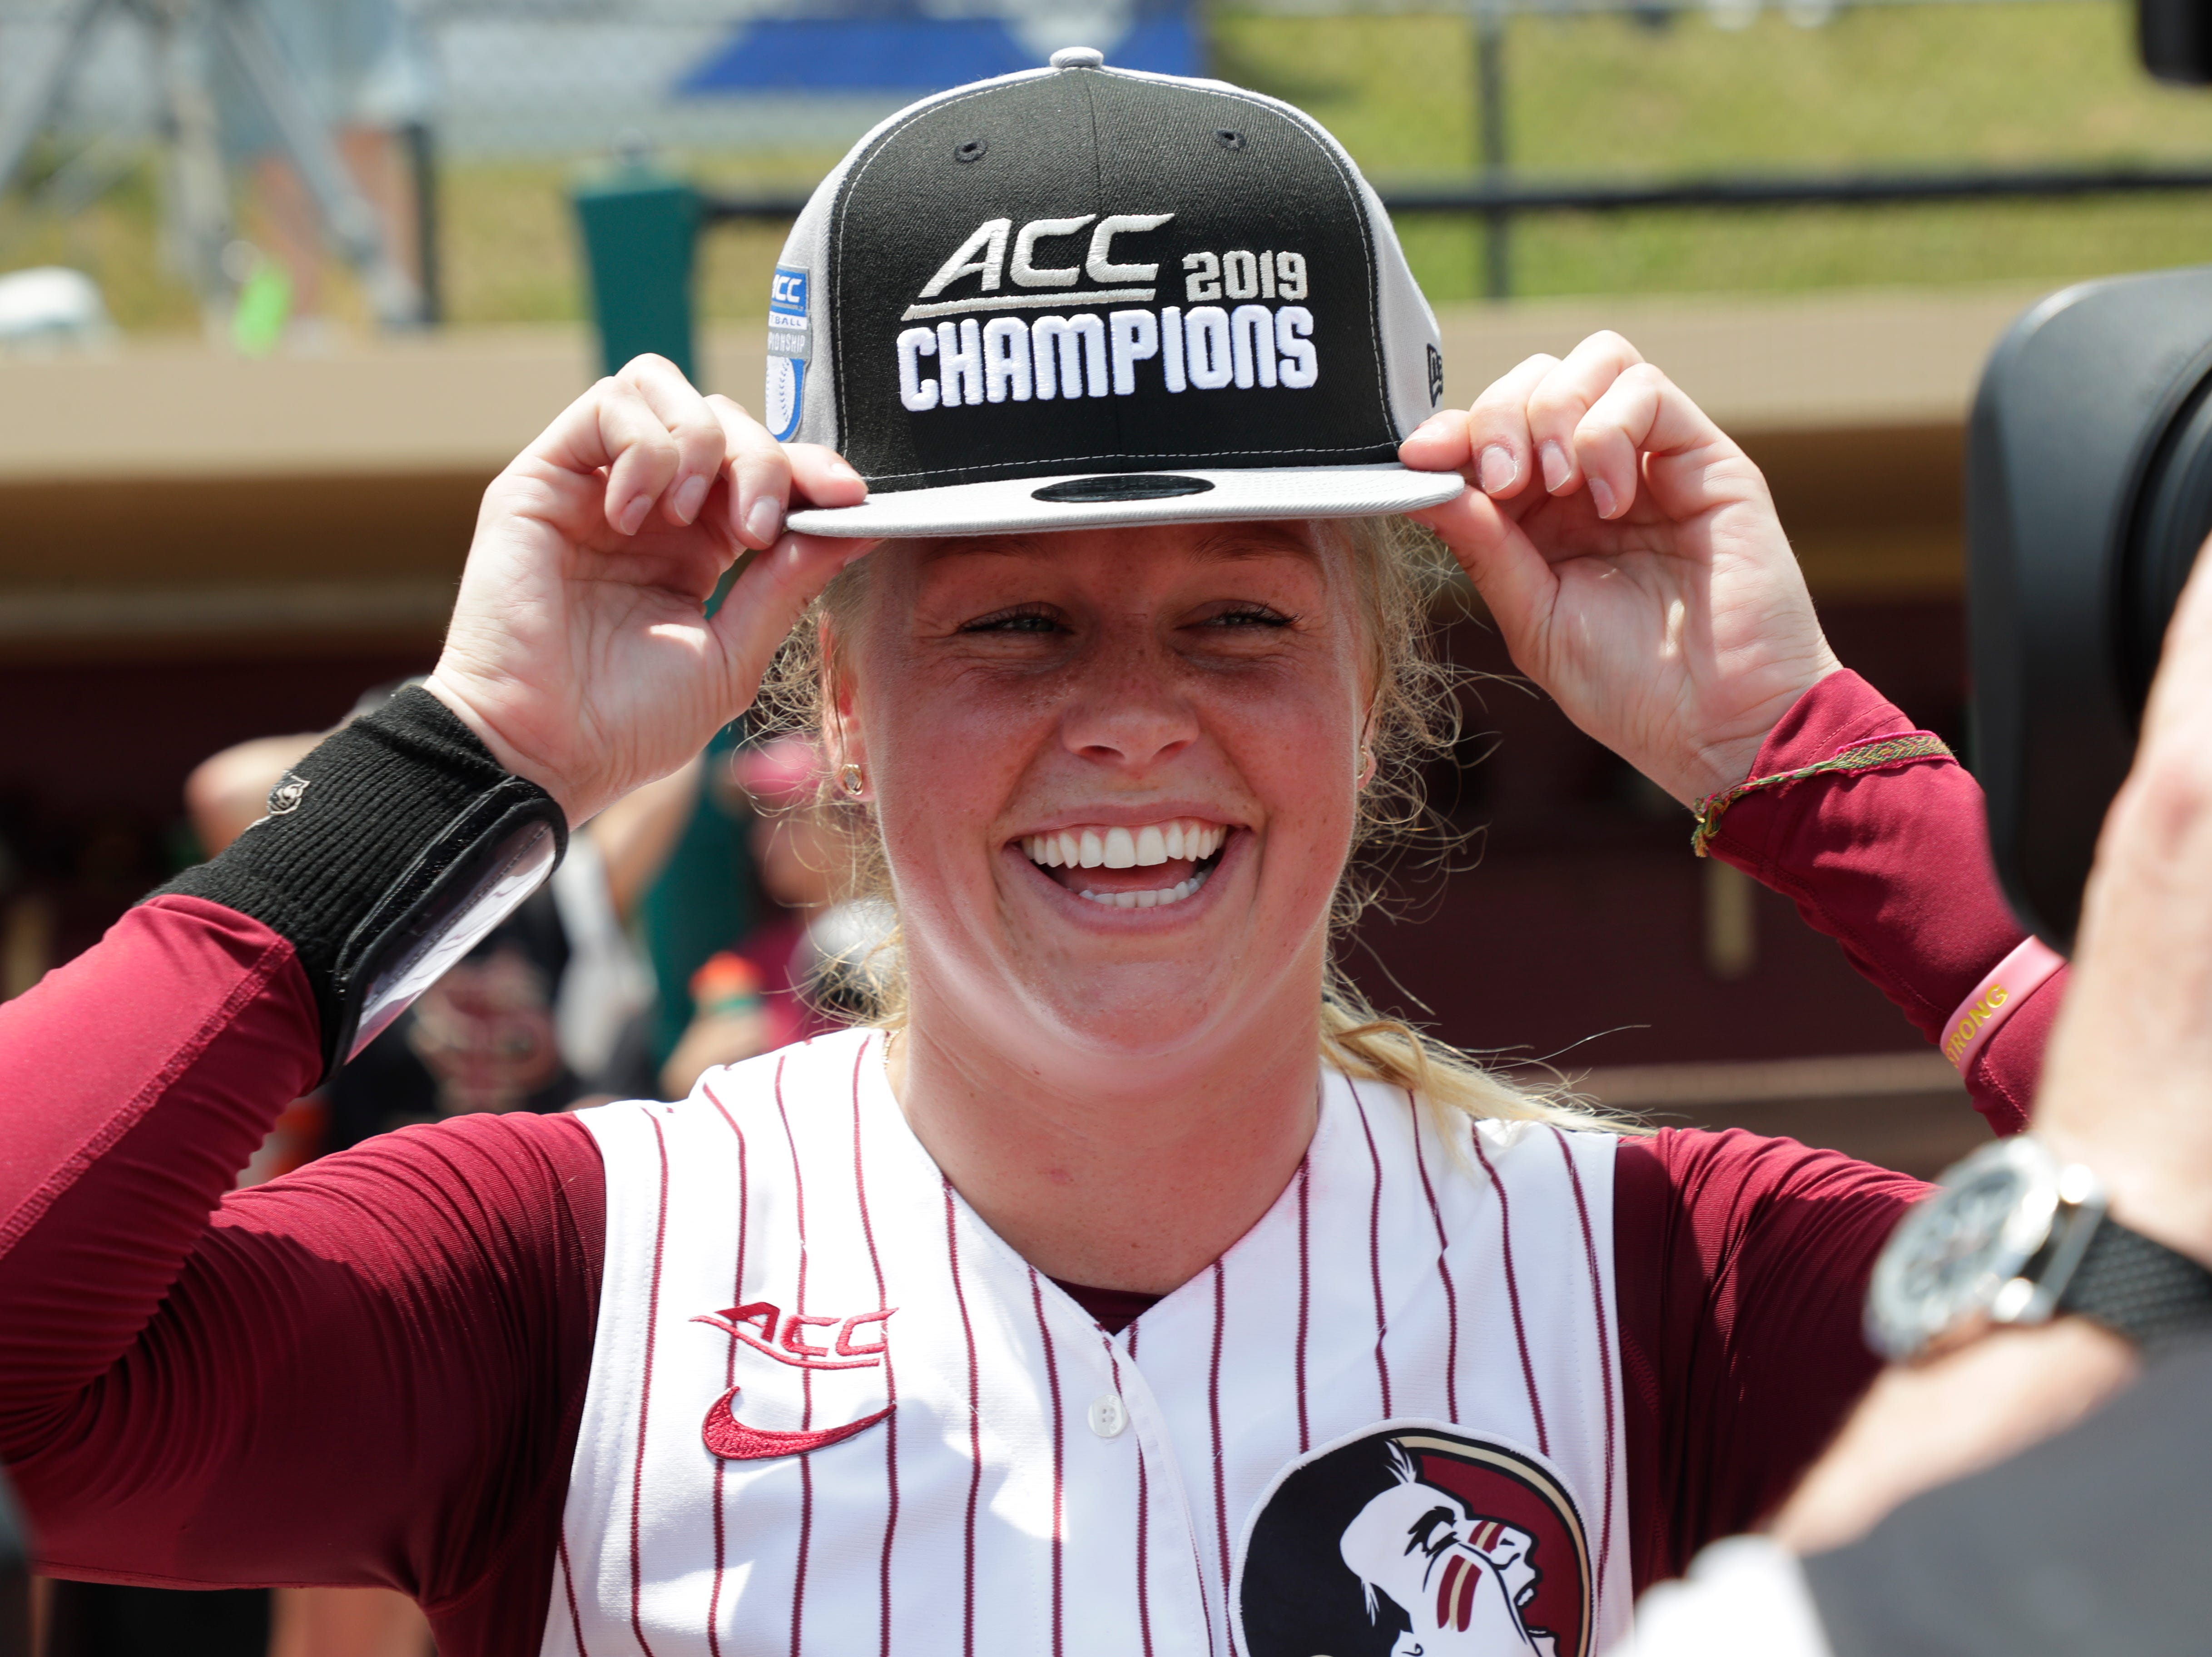 Florida State Seminoles starting pitcher/relief pitcher Meghan King (48) poses with her new hat. The Florida State Seminoles celebrate their victory over the UNC Tar Heels for the ACC Softball Championship title Saturday, May 11, 2019.